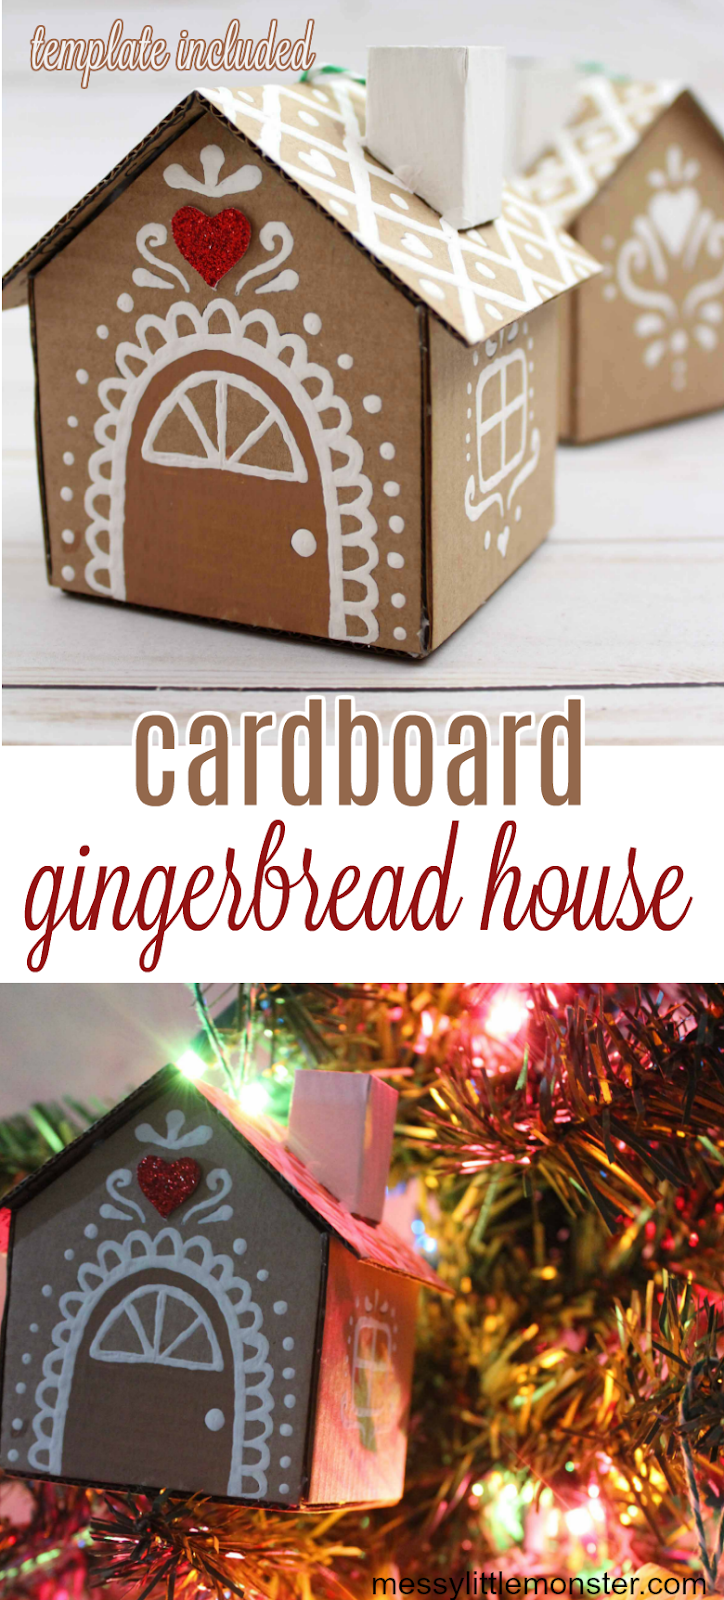 Cardboard ginger bread house ornament with gingerbread house template.